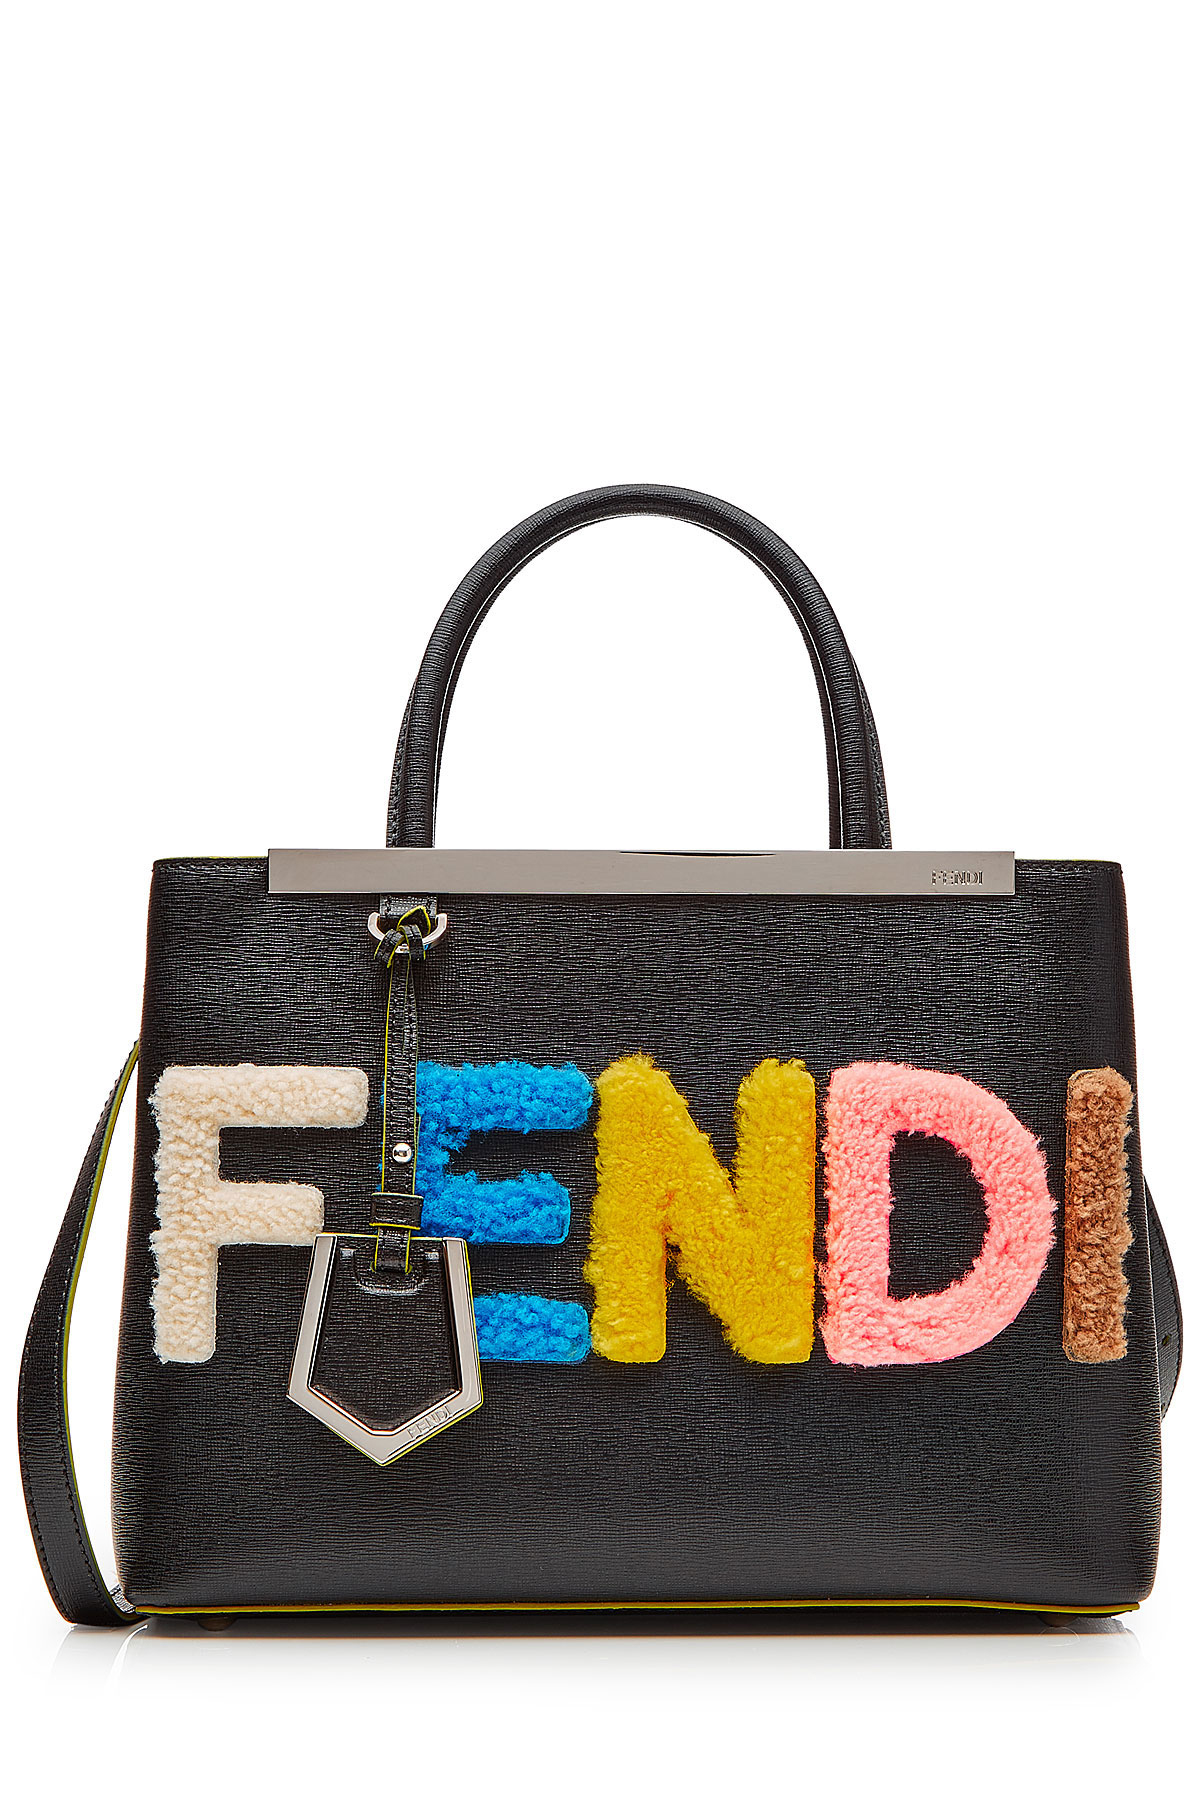 bf4f066071 Gallery. Previously sold at  STYLEBOP.com · Women s Shearling Bags Women s Fendi  2jours ...